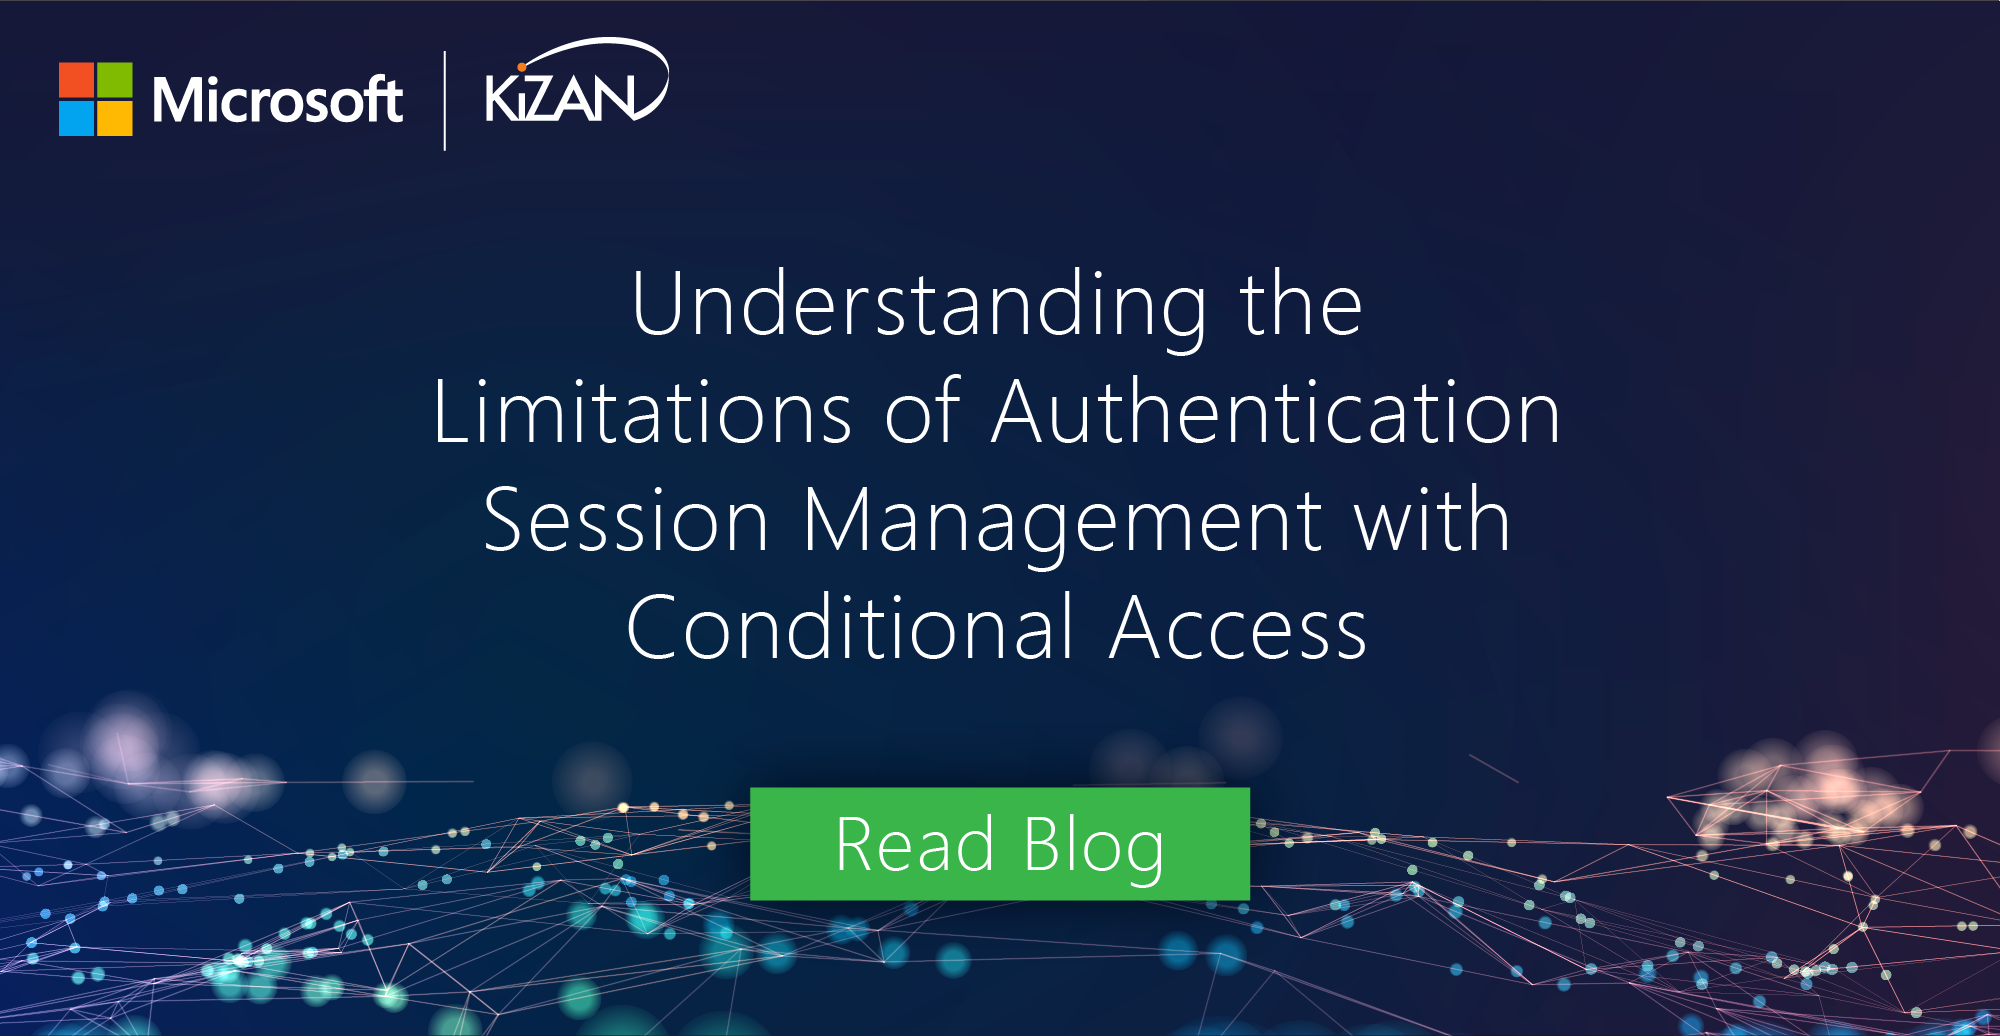 Understanding the Limitations of Authentication Session Management with Conditional Access